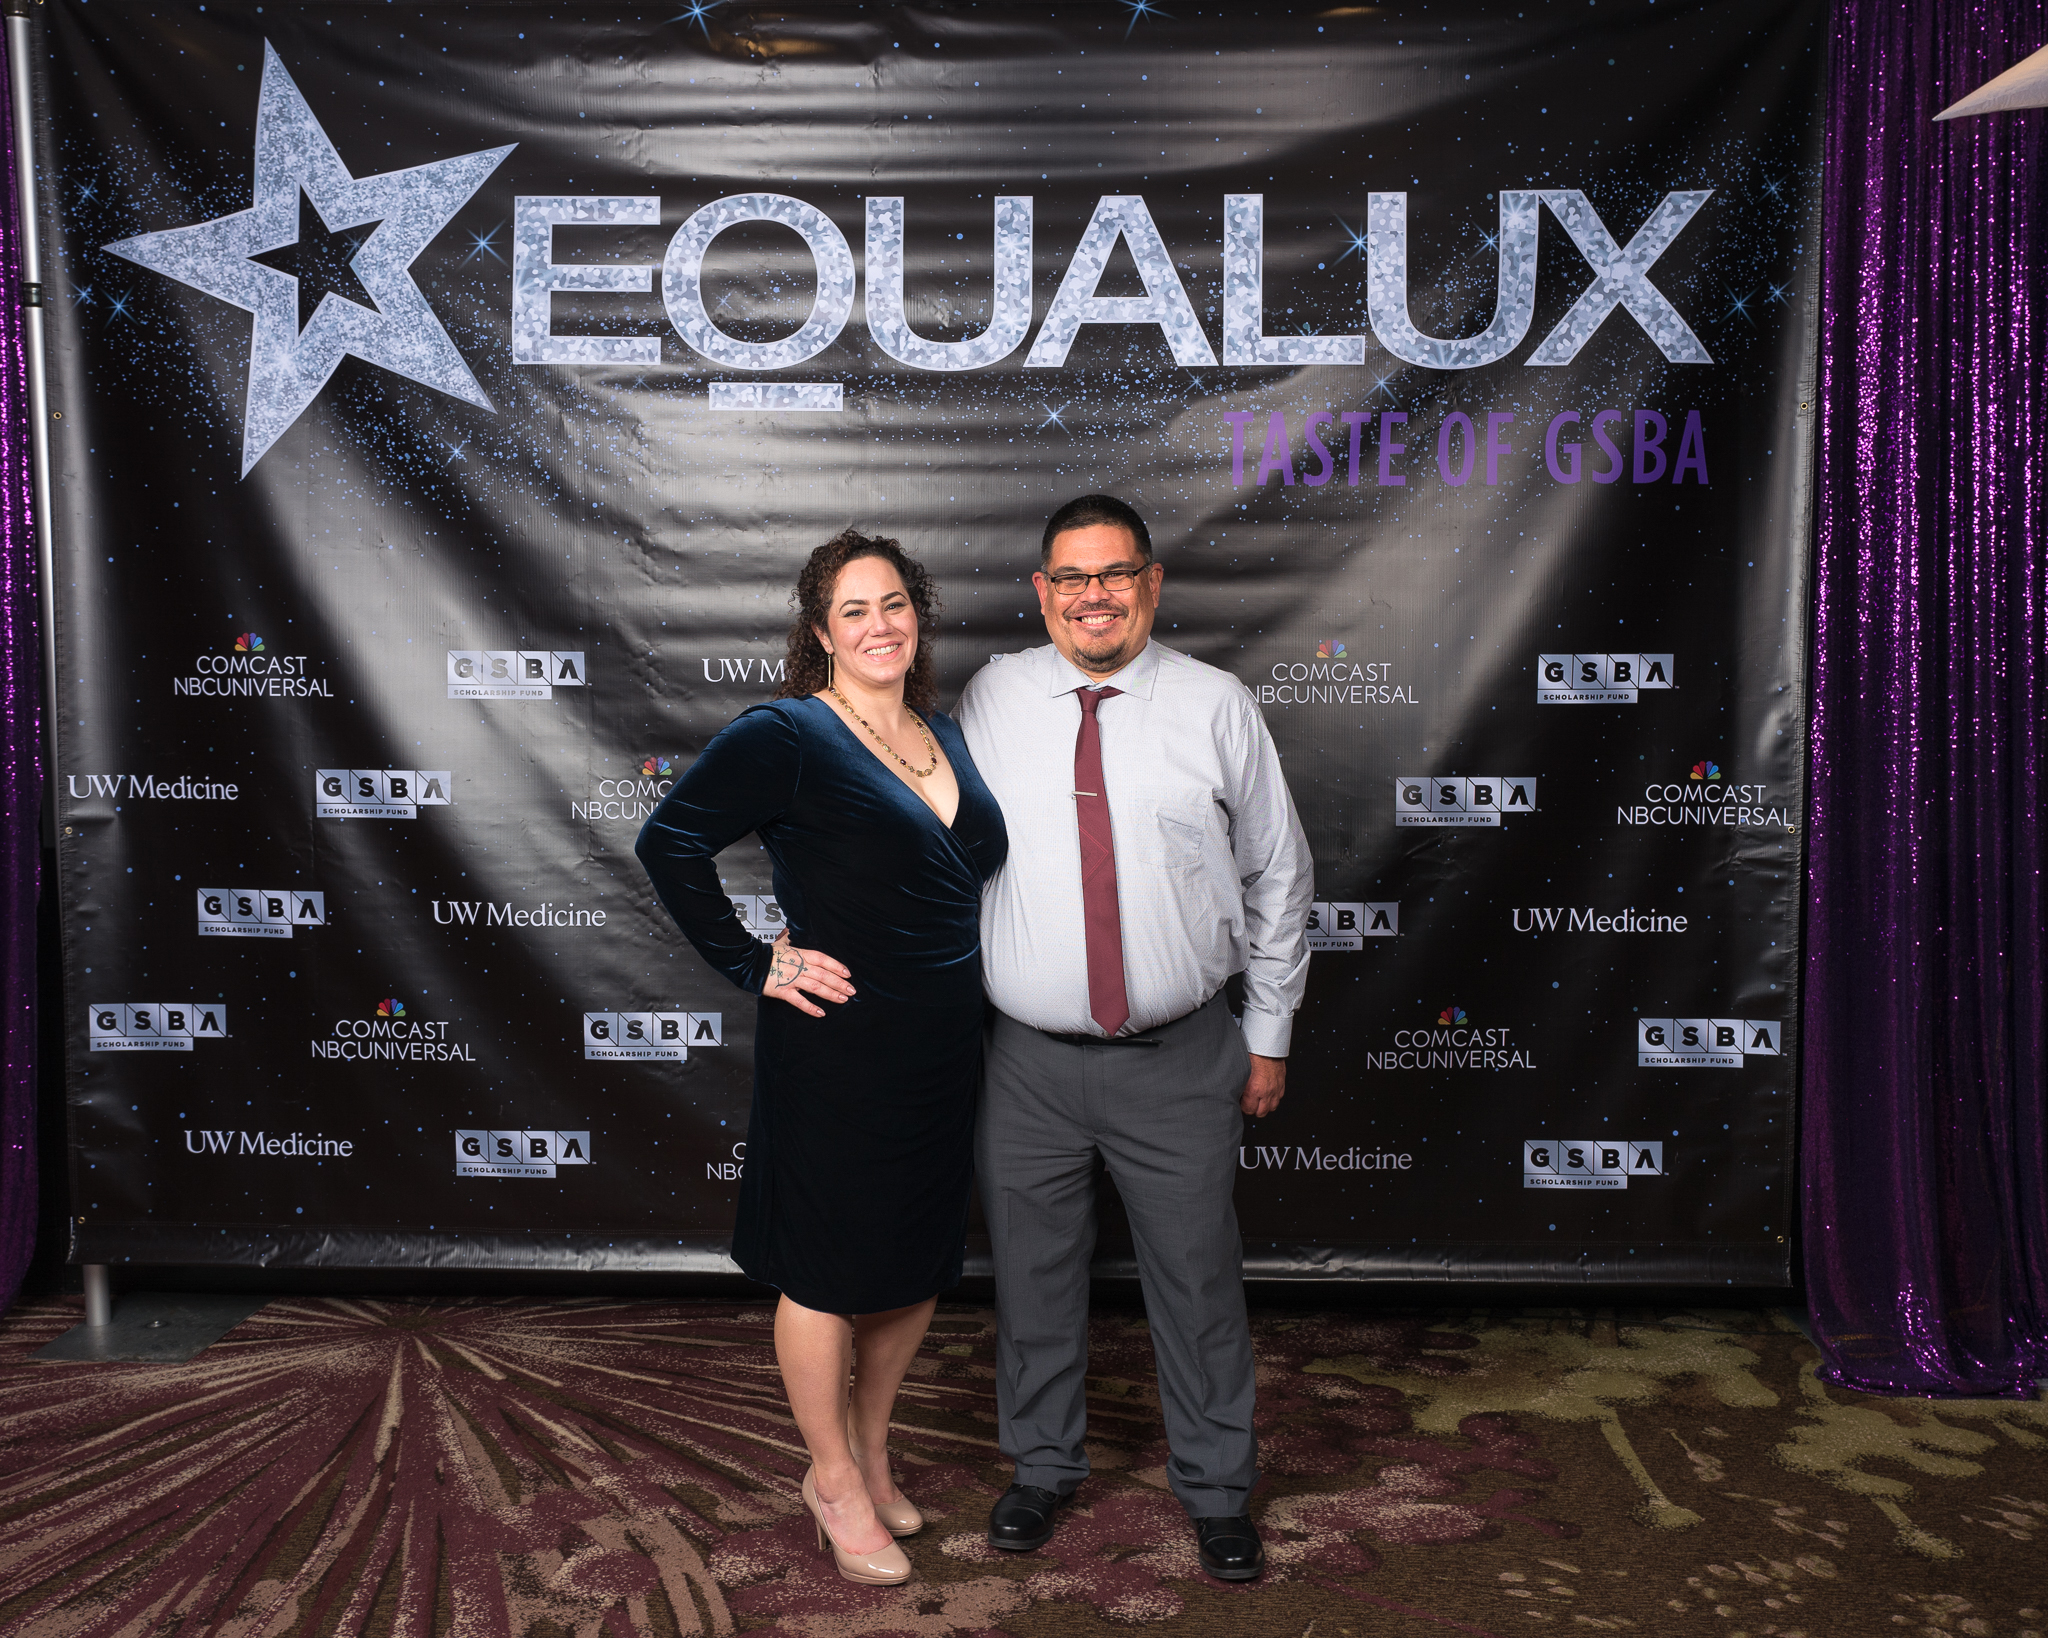 111718_GSBA EQUALUX at The Westin Seattle (Credit- Nate Gowdy)-54.jpg